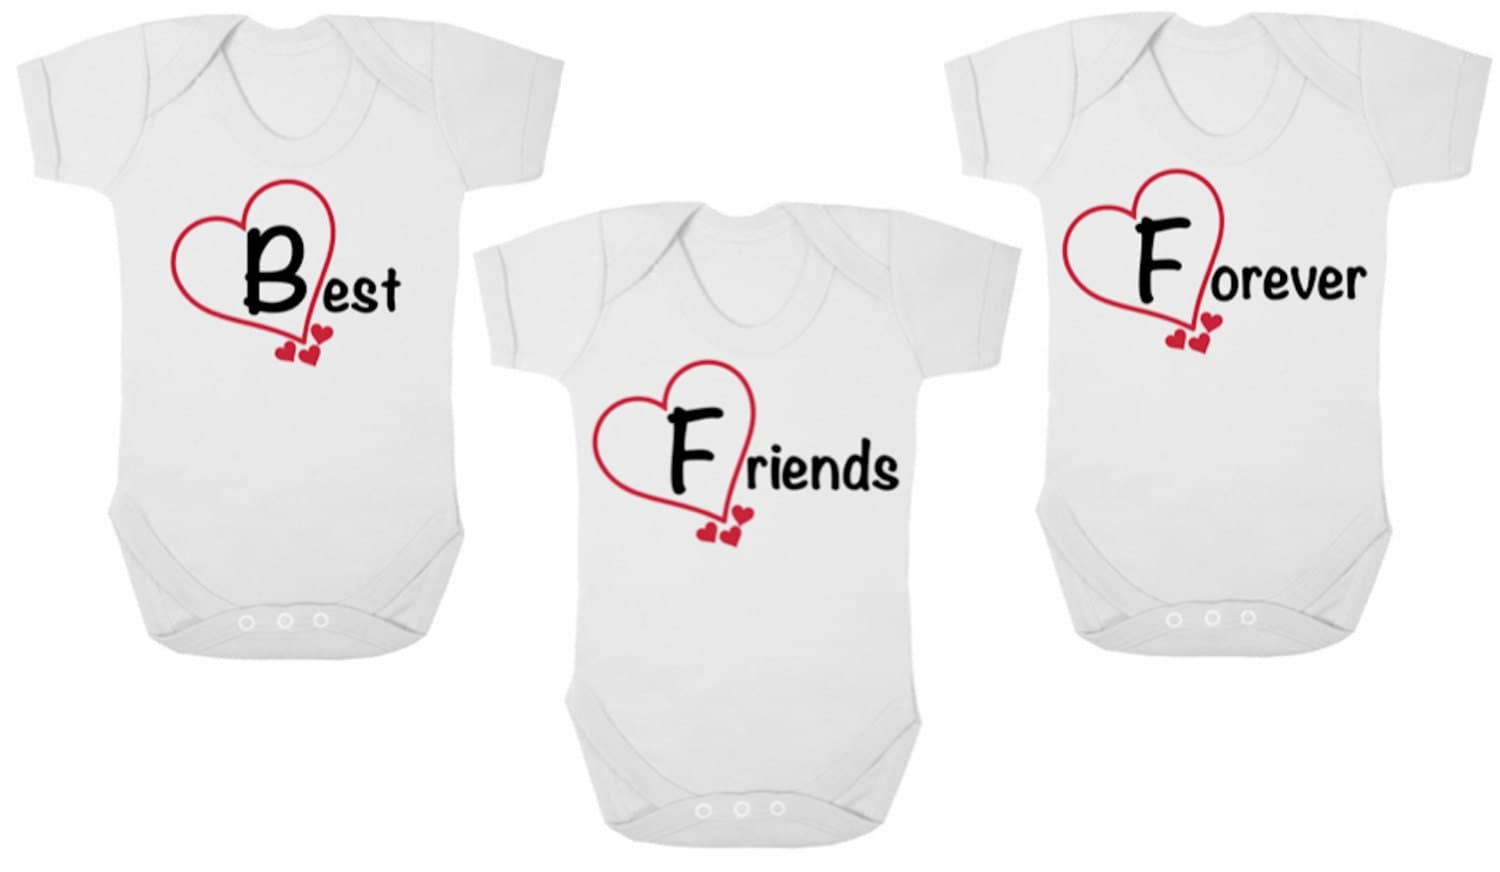 BFF Best Friends Forever      New TRIPLETS Baby BodysuitsBaby Grows OnesiesVestsRompers Baby Shower Newborn Gift Christening Gift